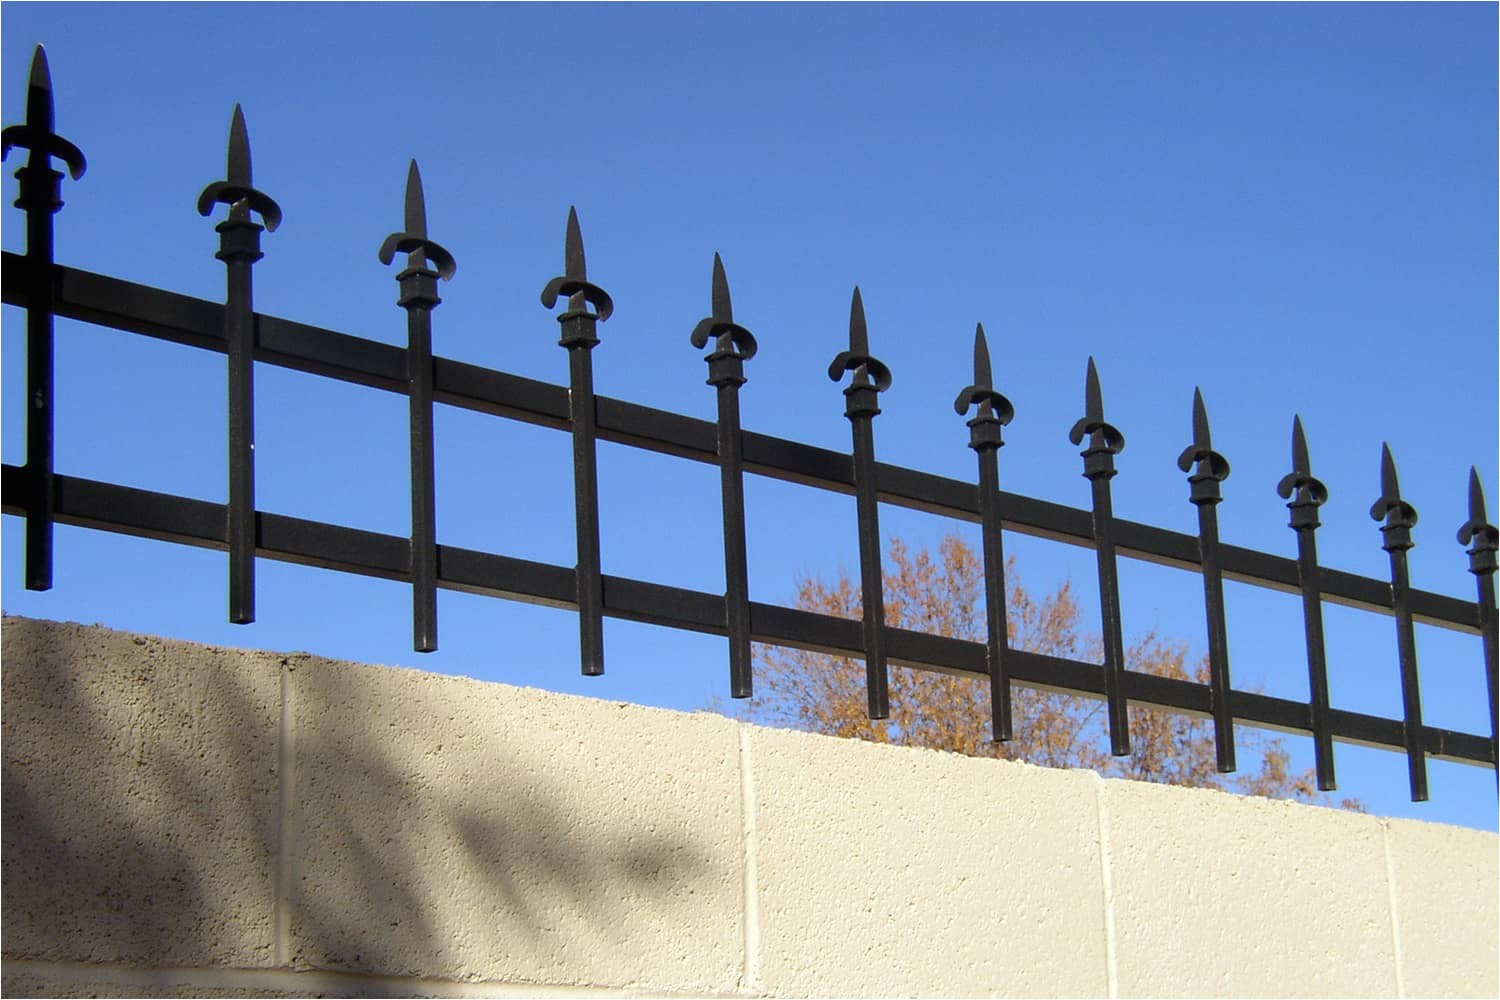 Decorative Wrought Iron Fence toppers Decorative Wrought Iron Fencing Examples Sun King Fencing